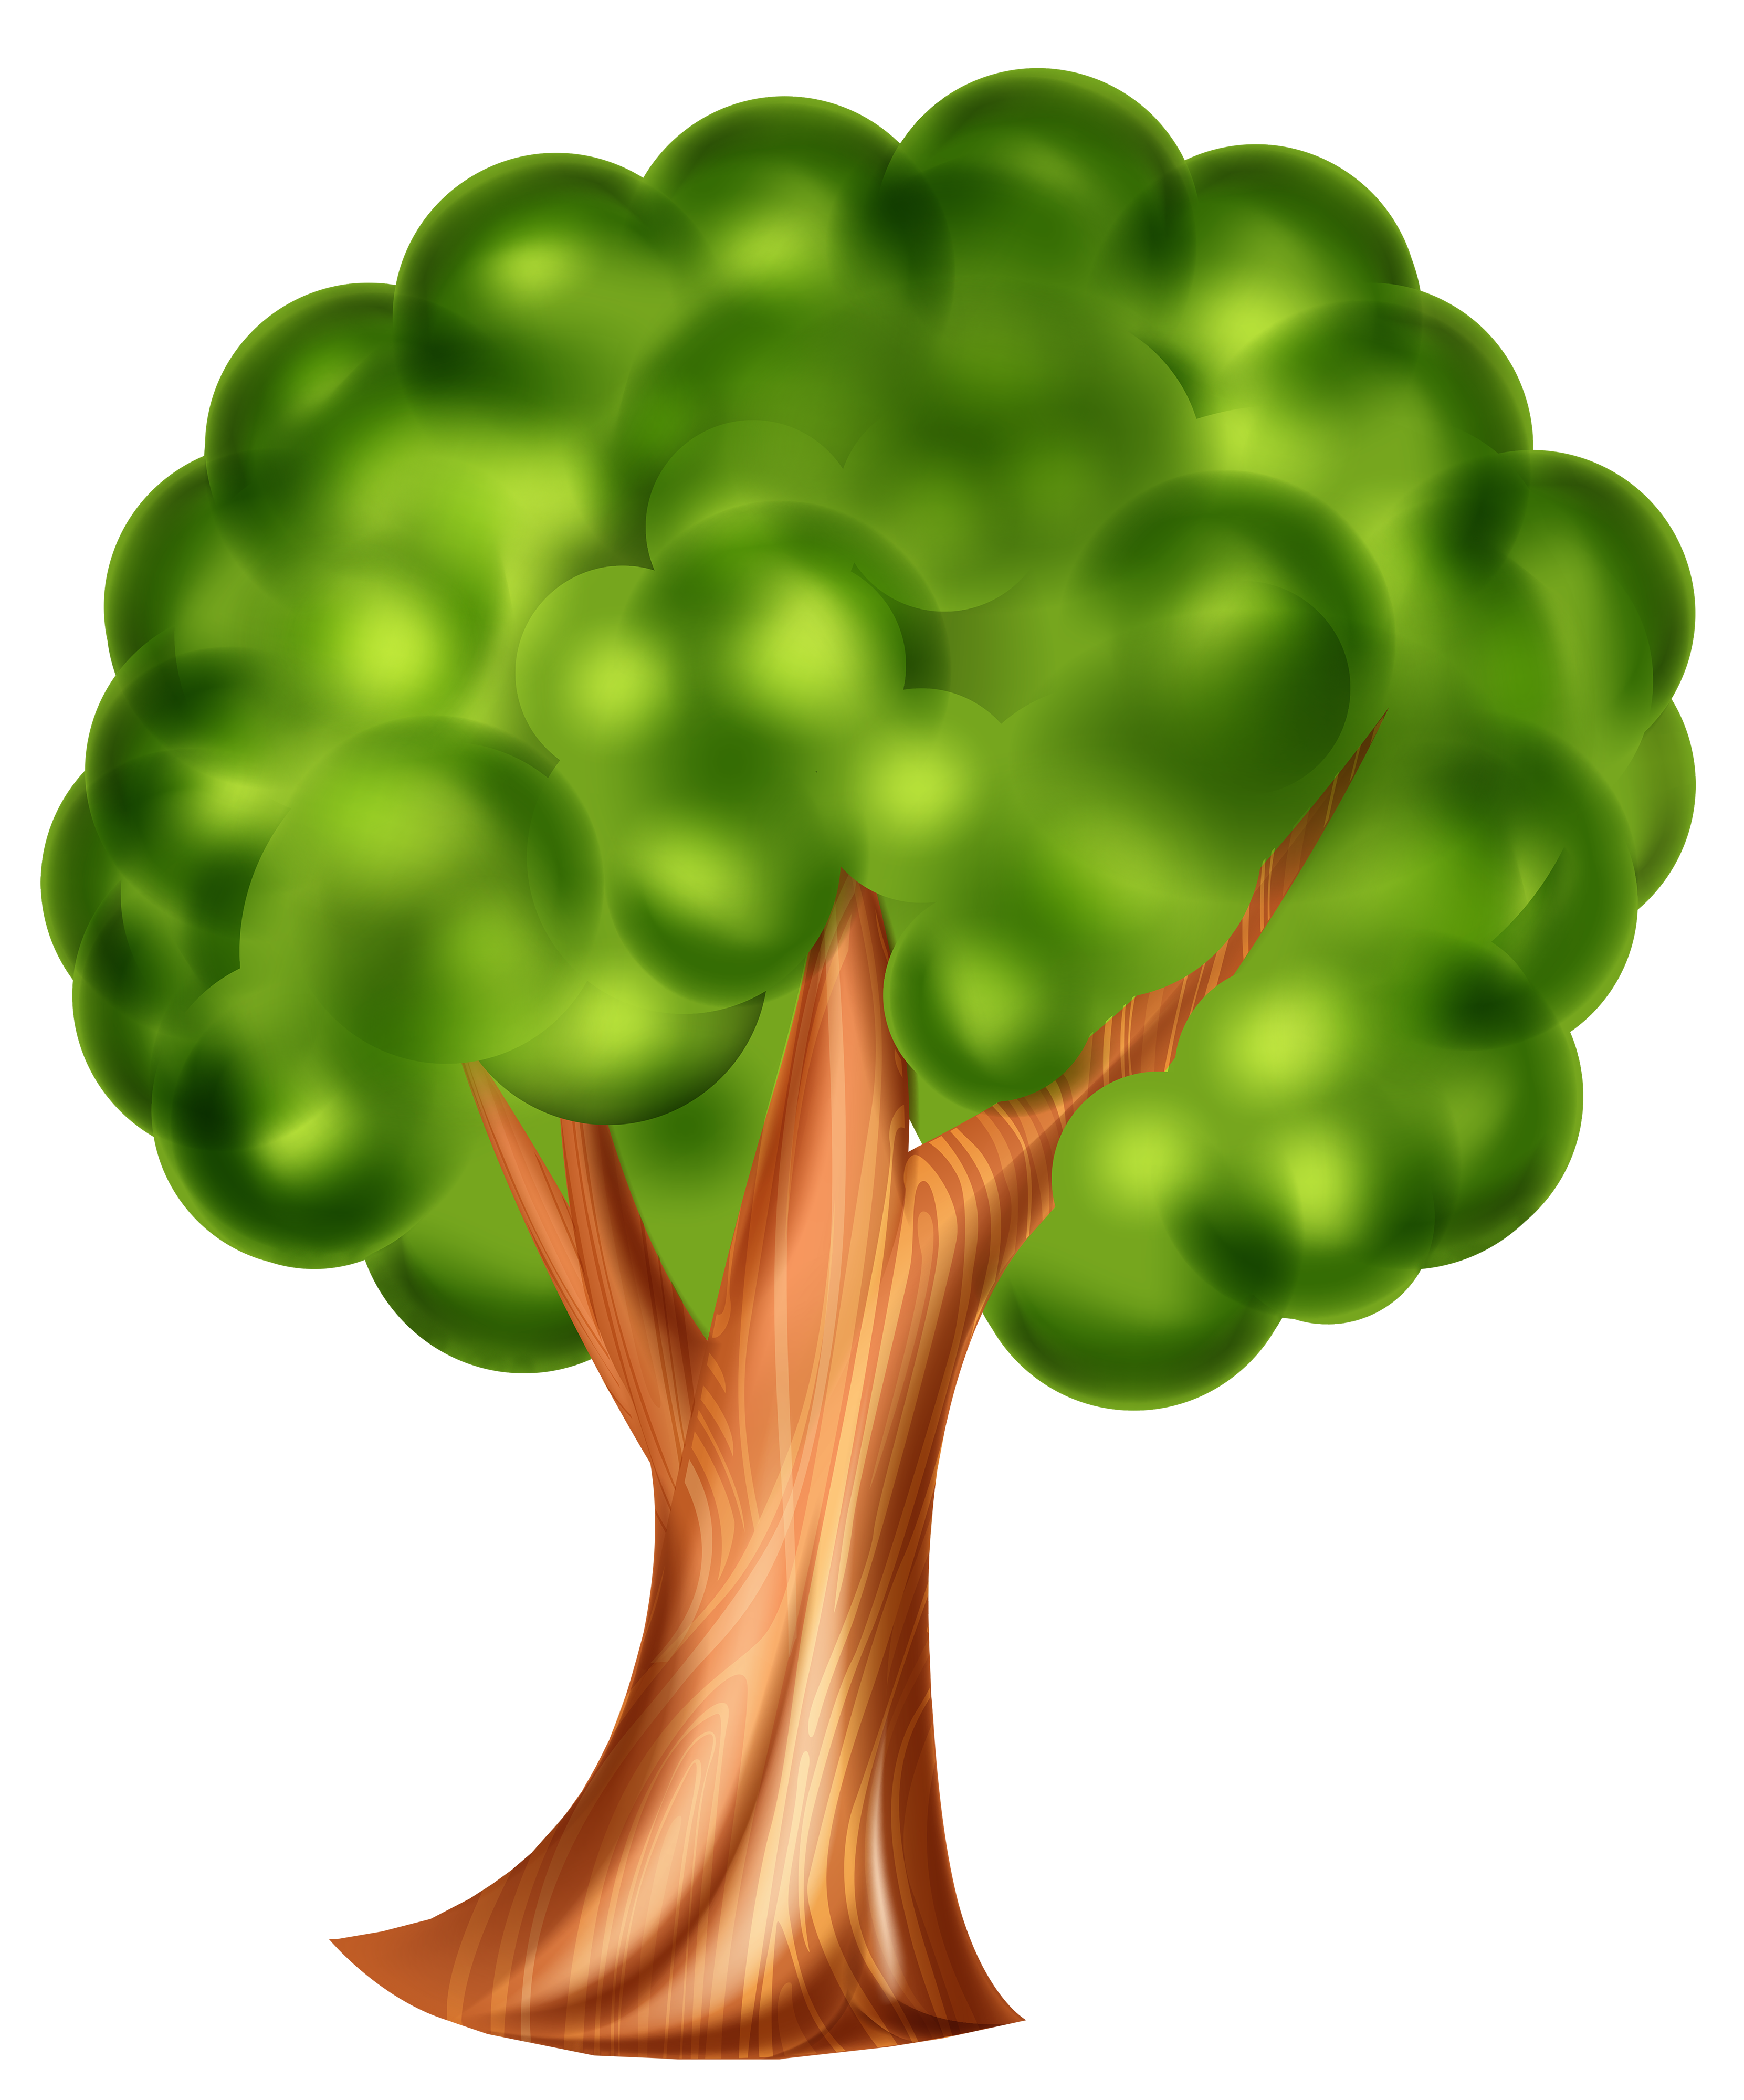 Trees clipart png. Tree clip art best